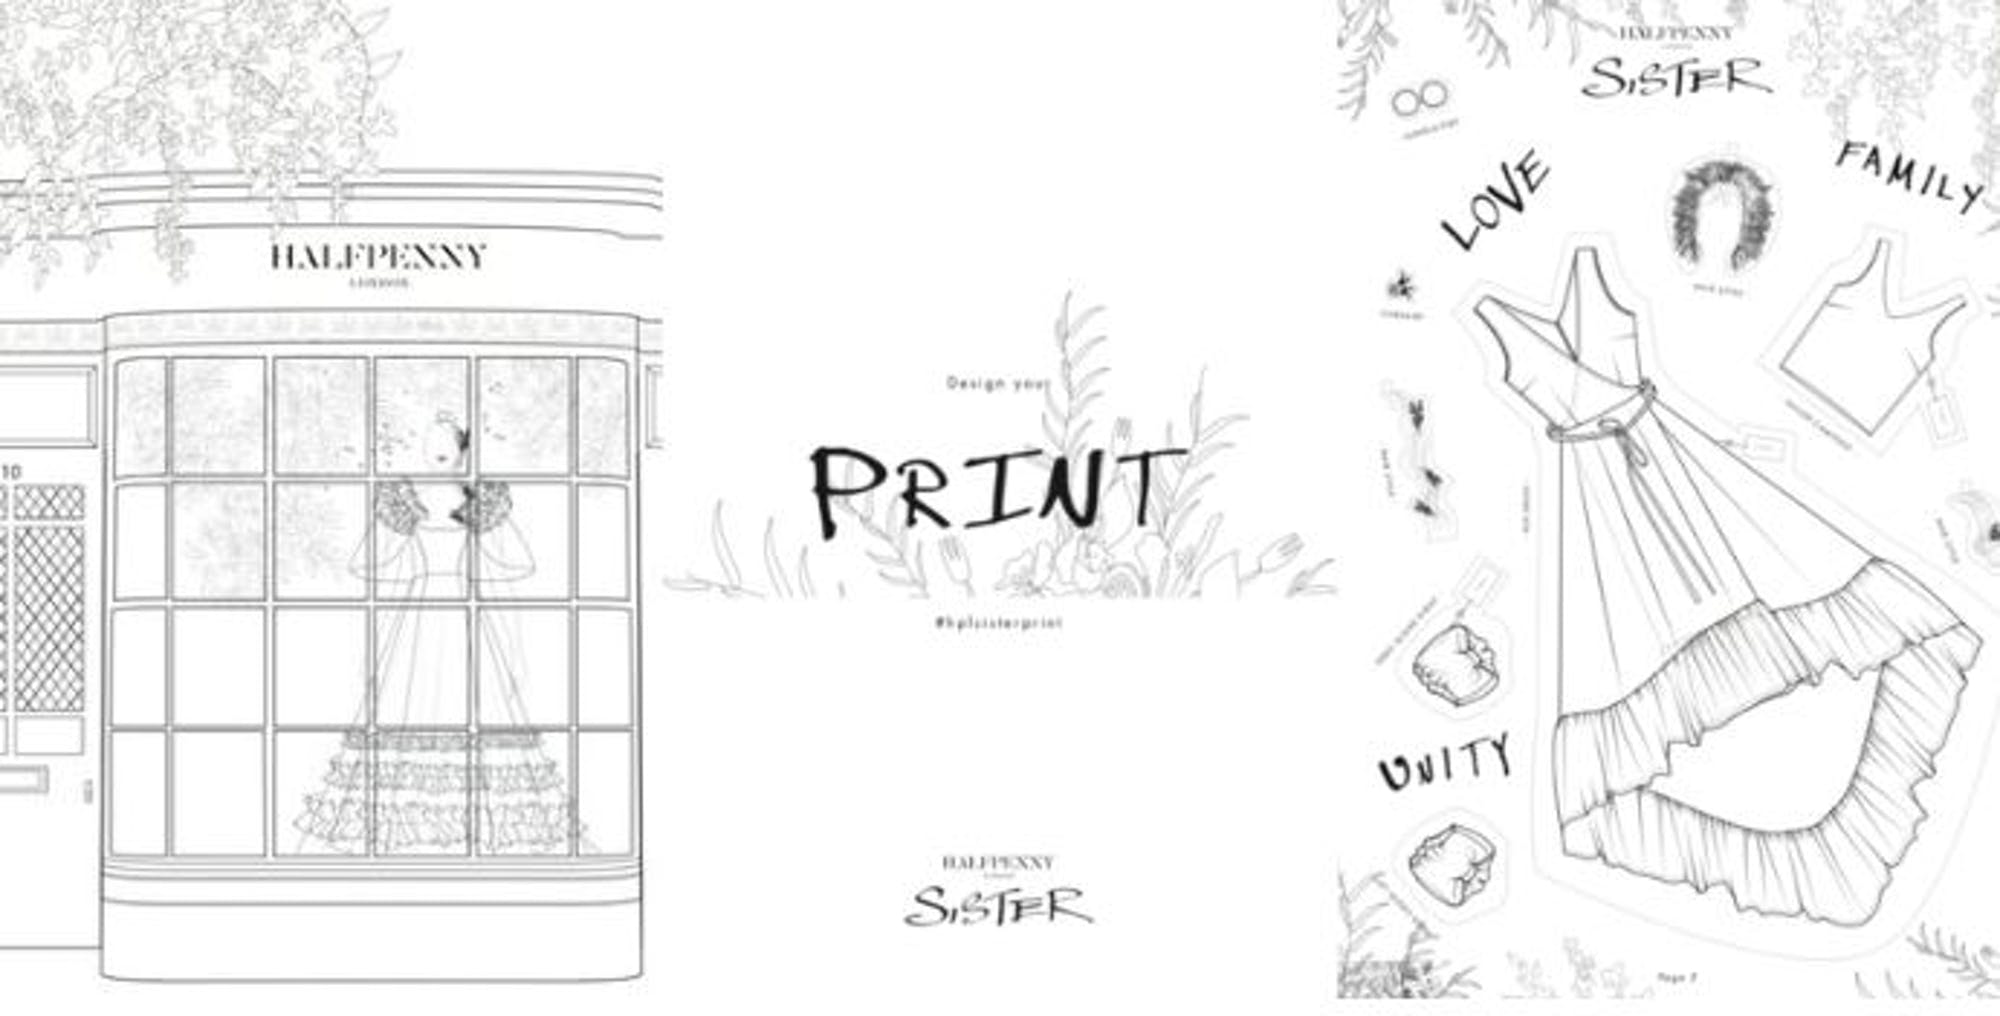 Get creative with Halfpenny's colouring book and print design competition